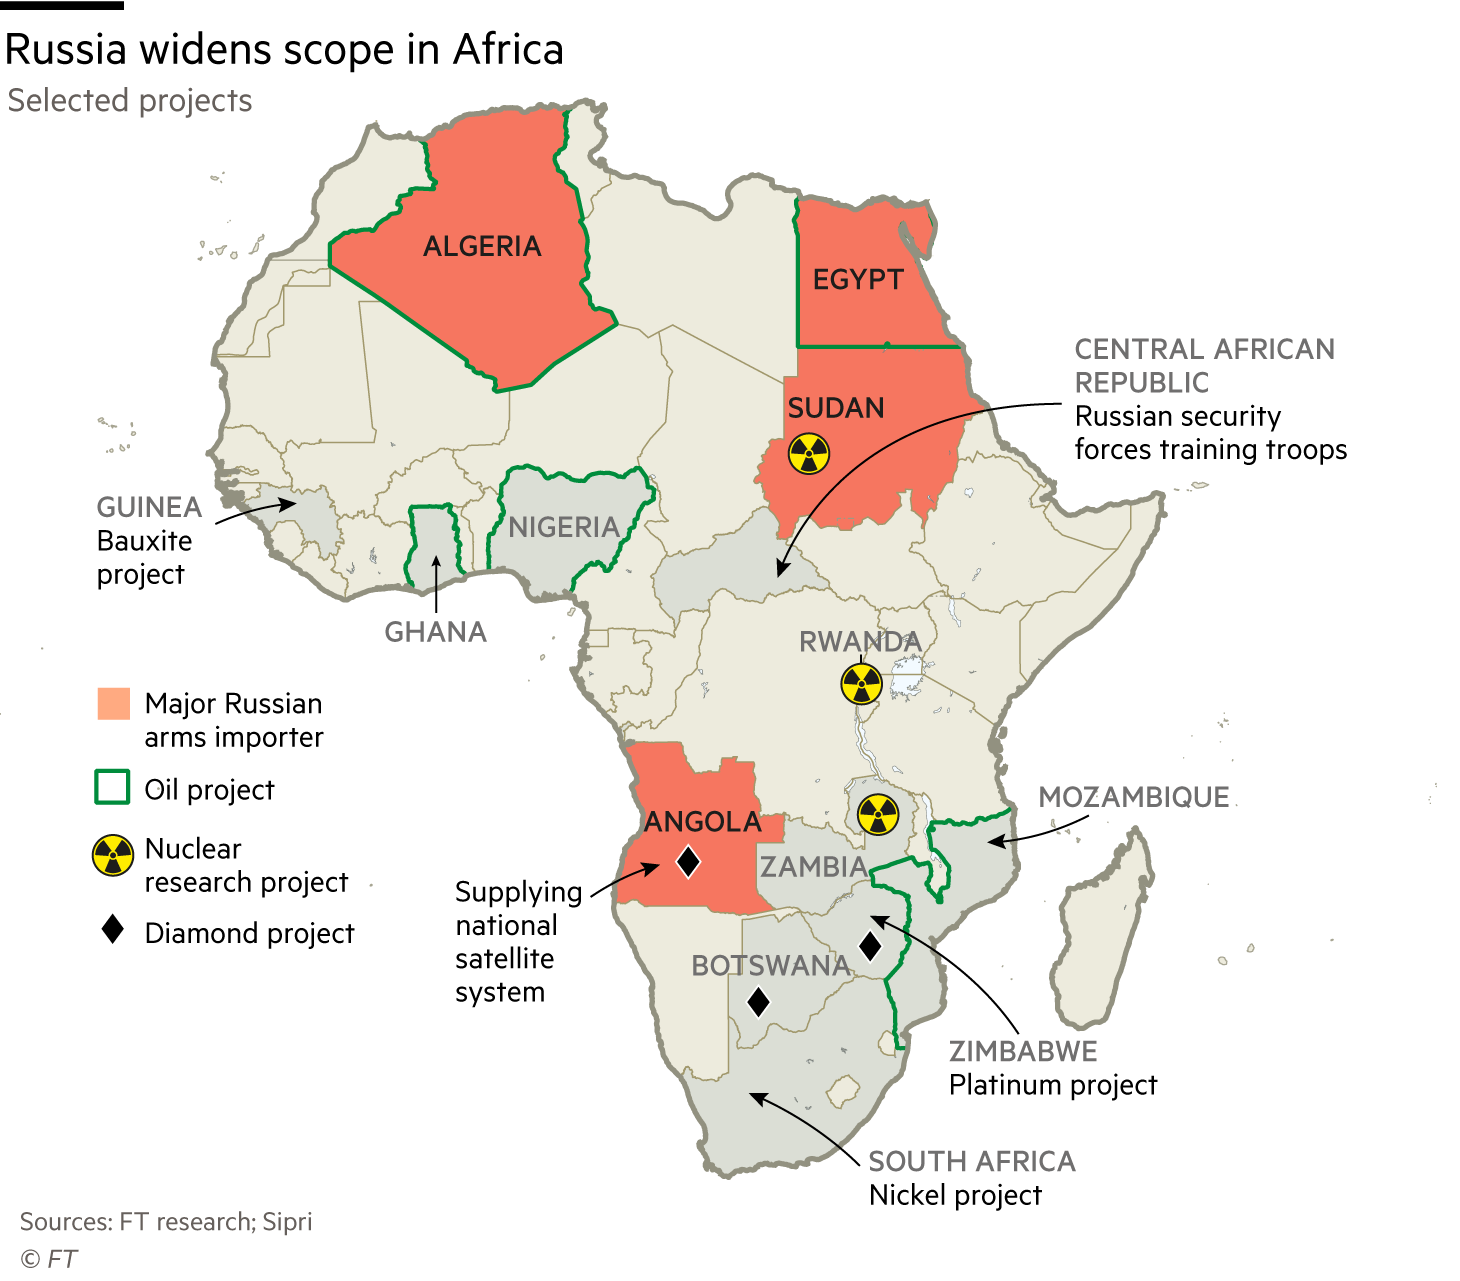 Map of selected Russian projects in Africa